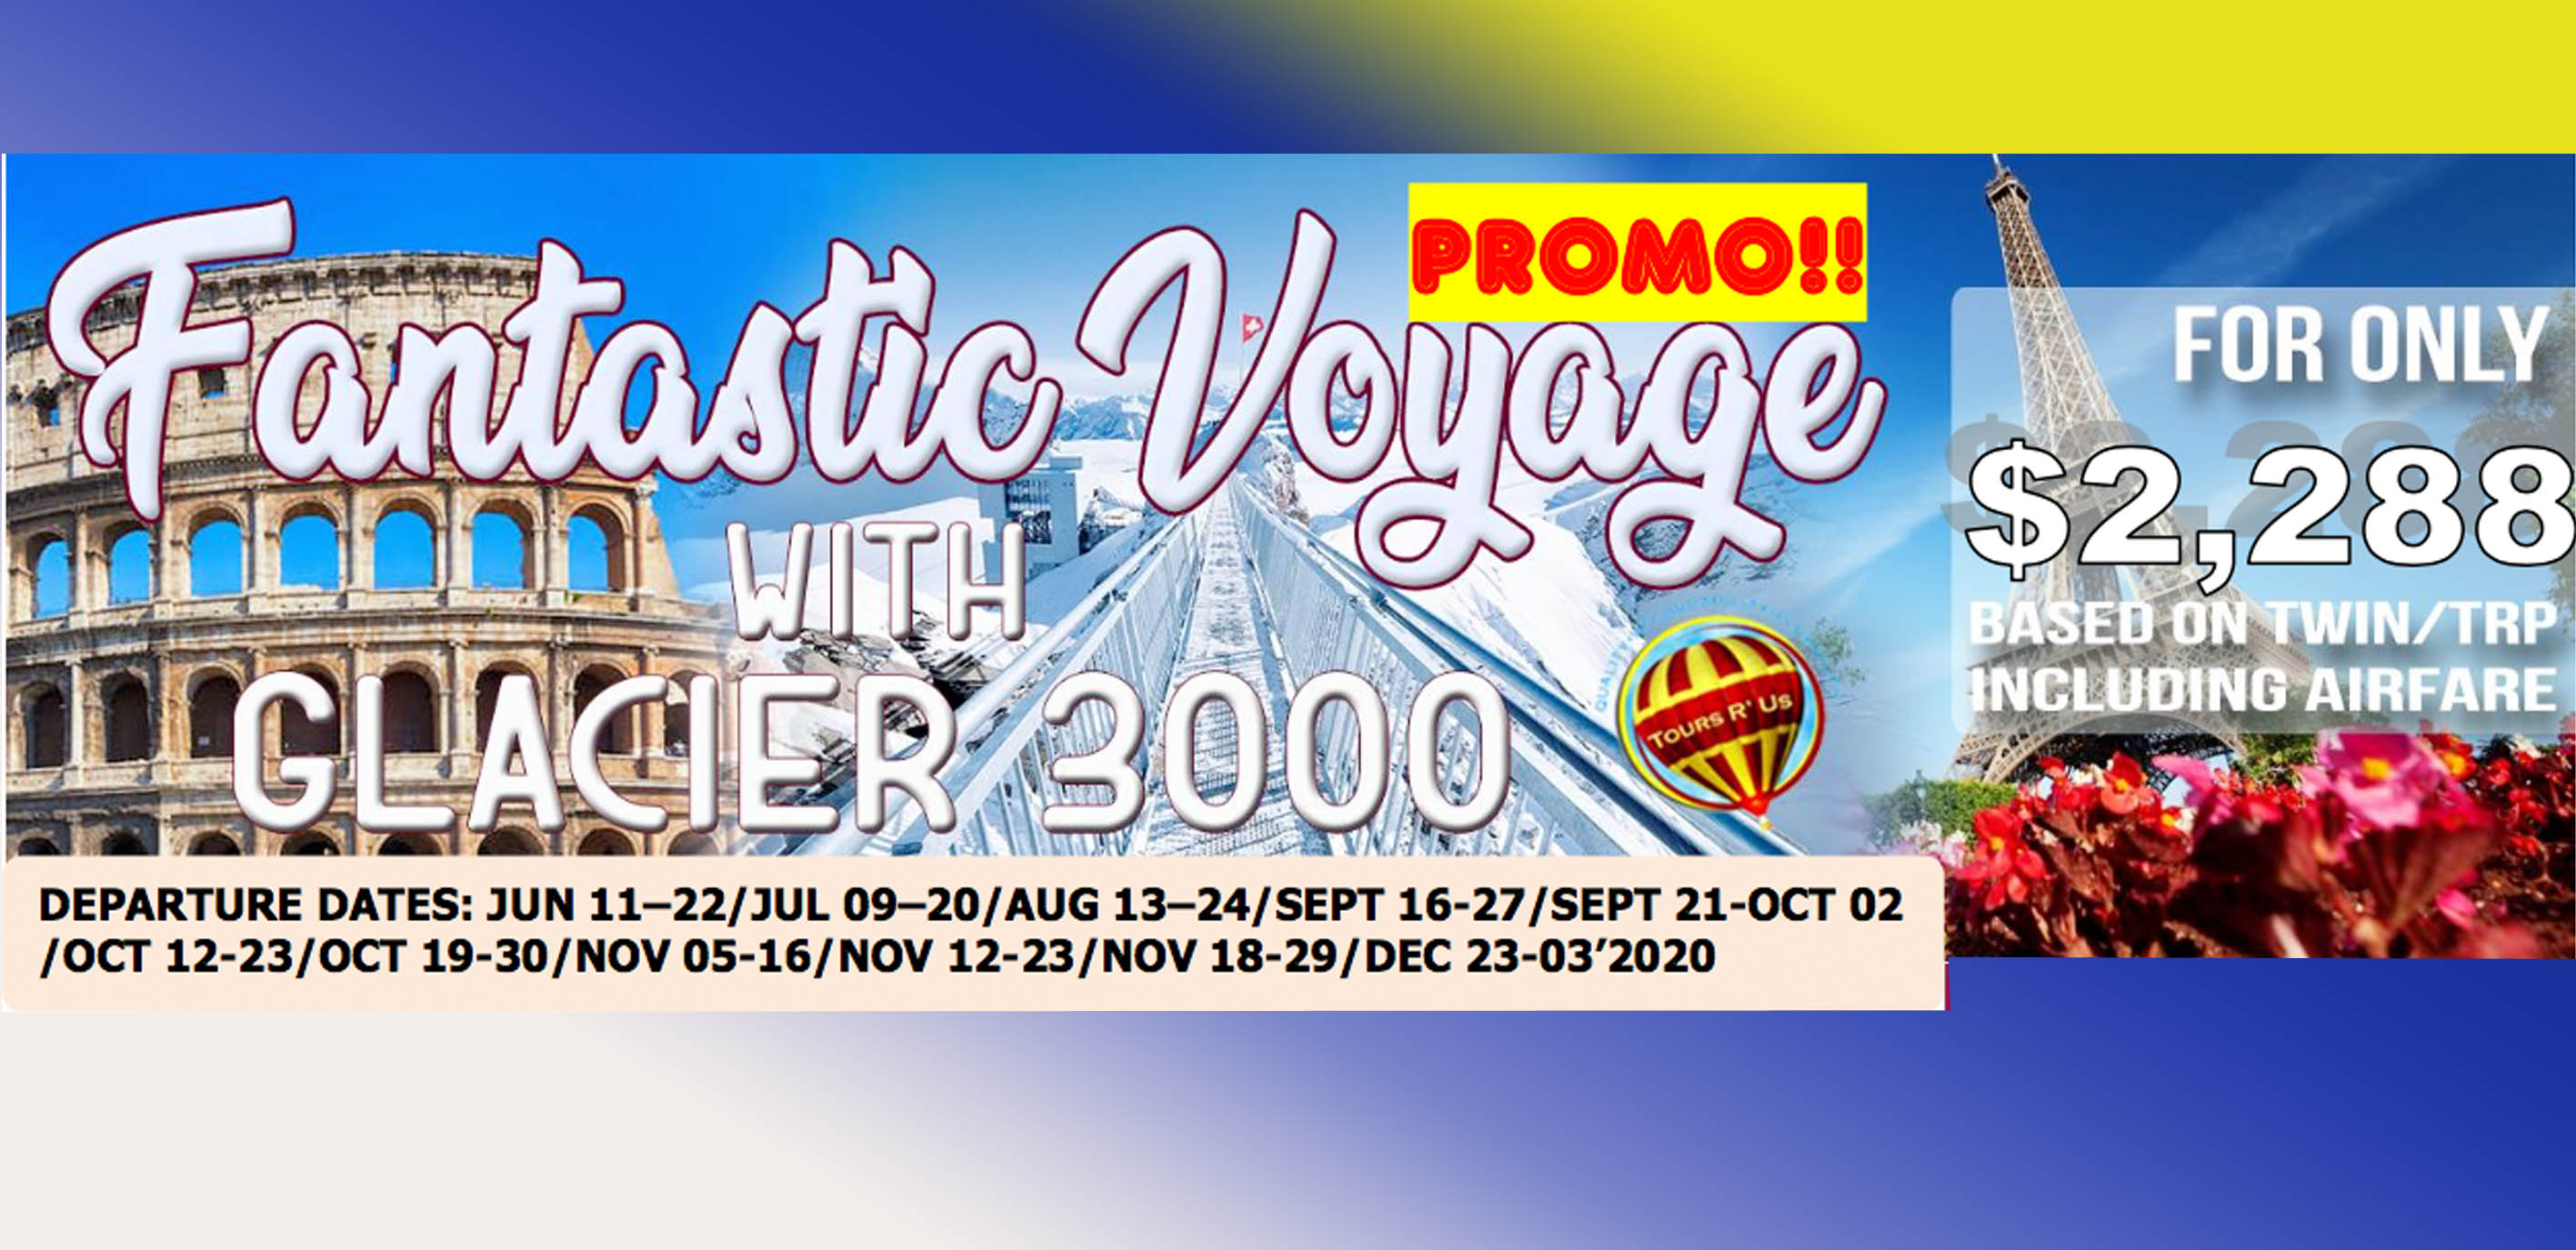 FANTASTIC VOYAGE GLACIER 3000 Featured Images 2019 May Packages